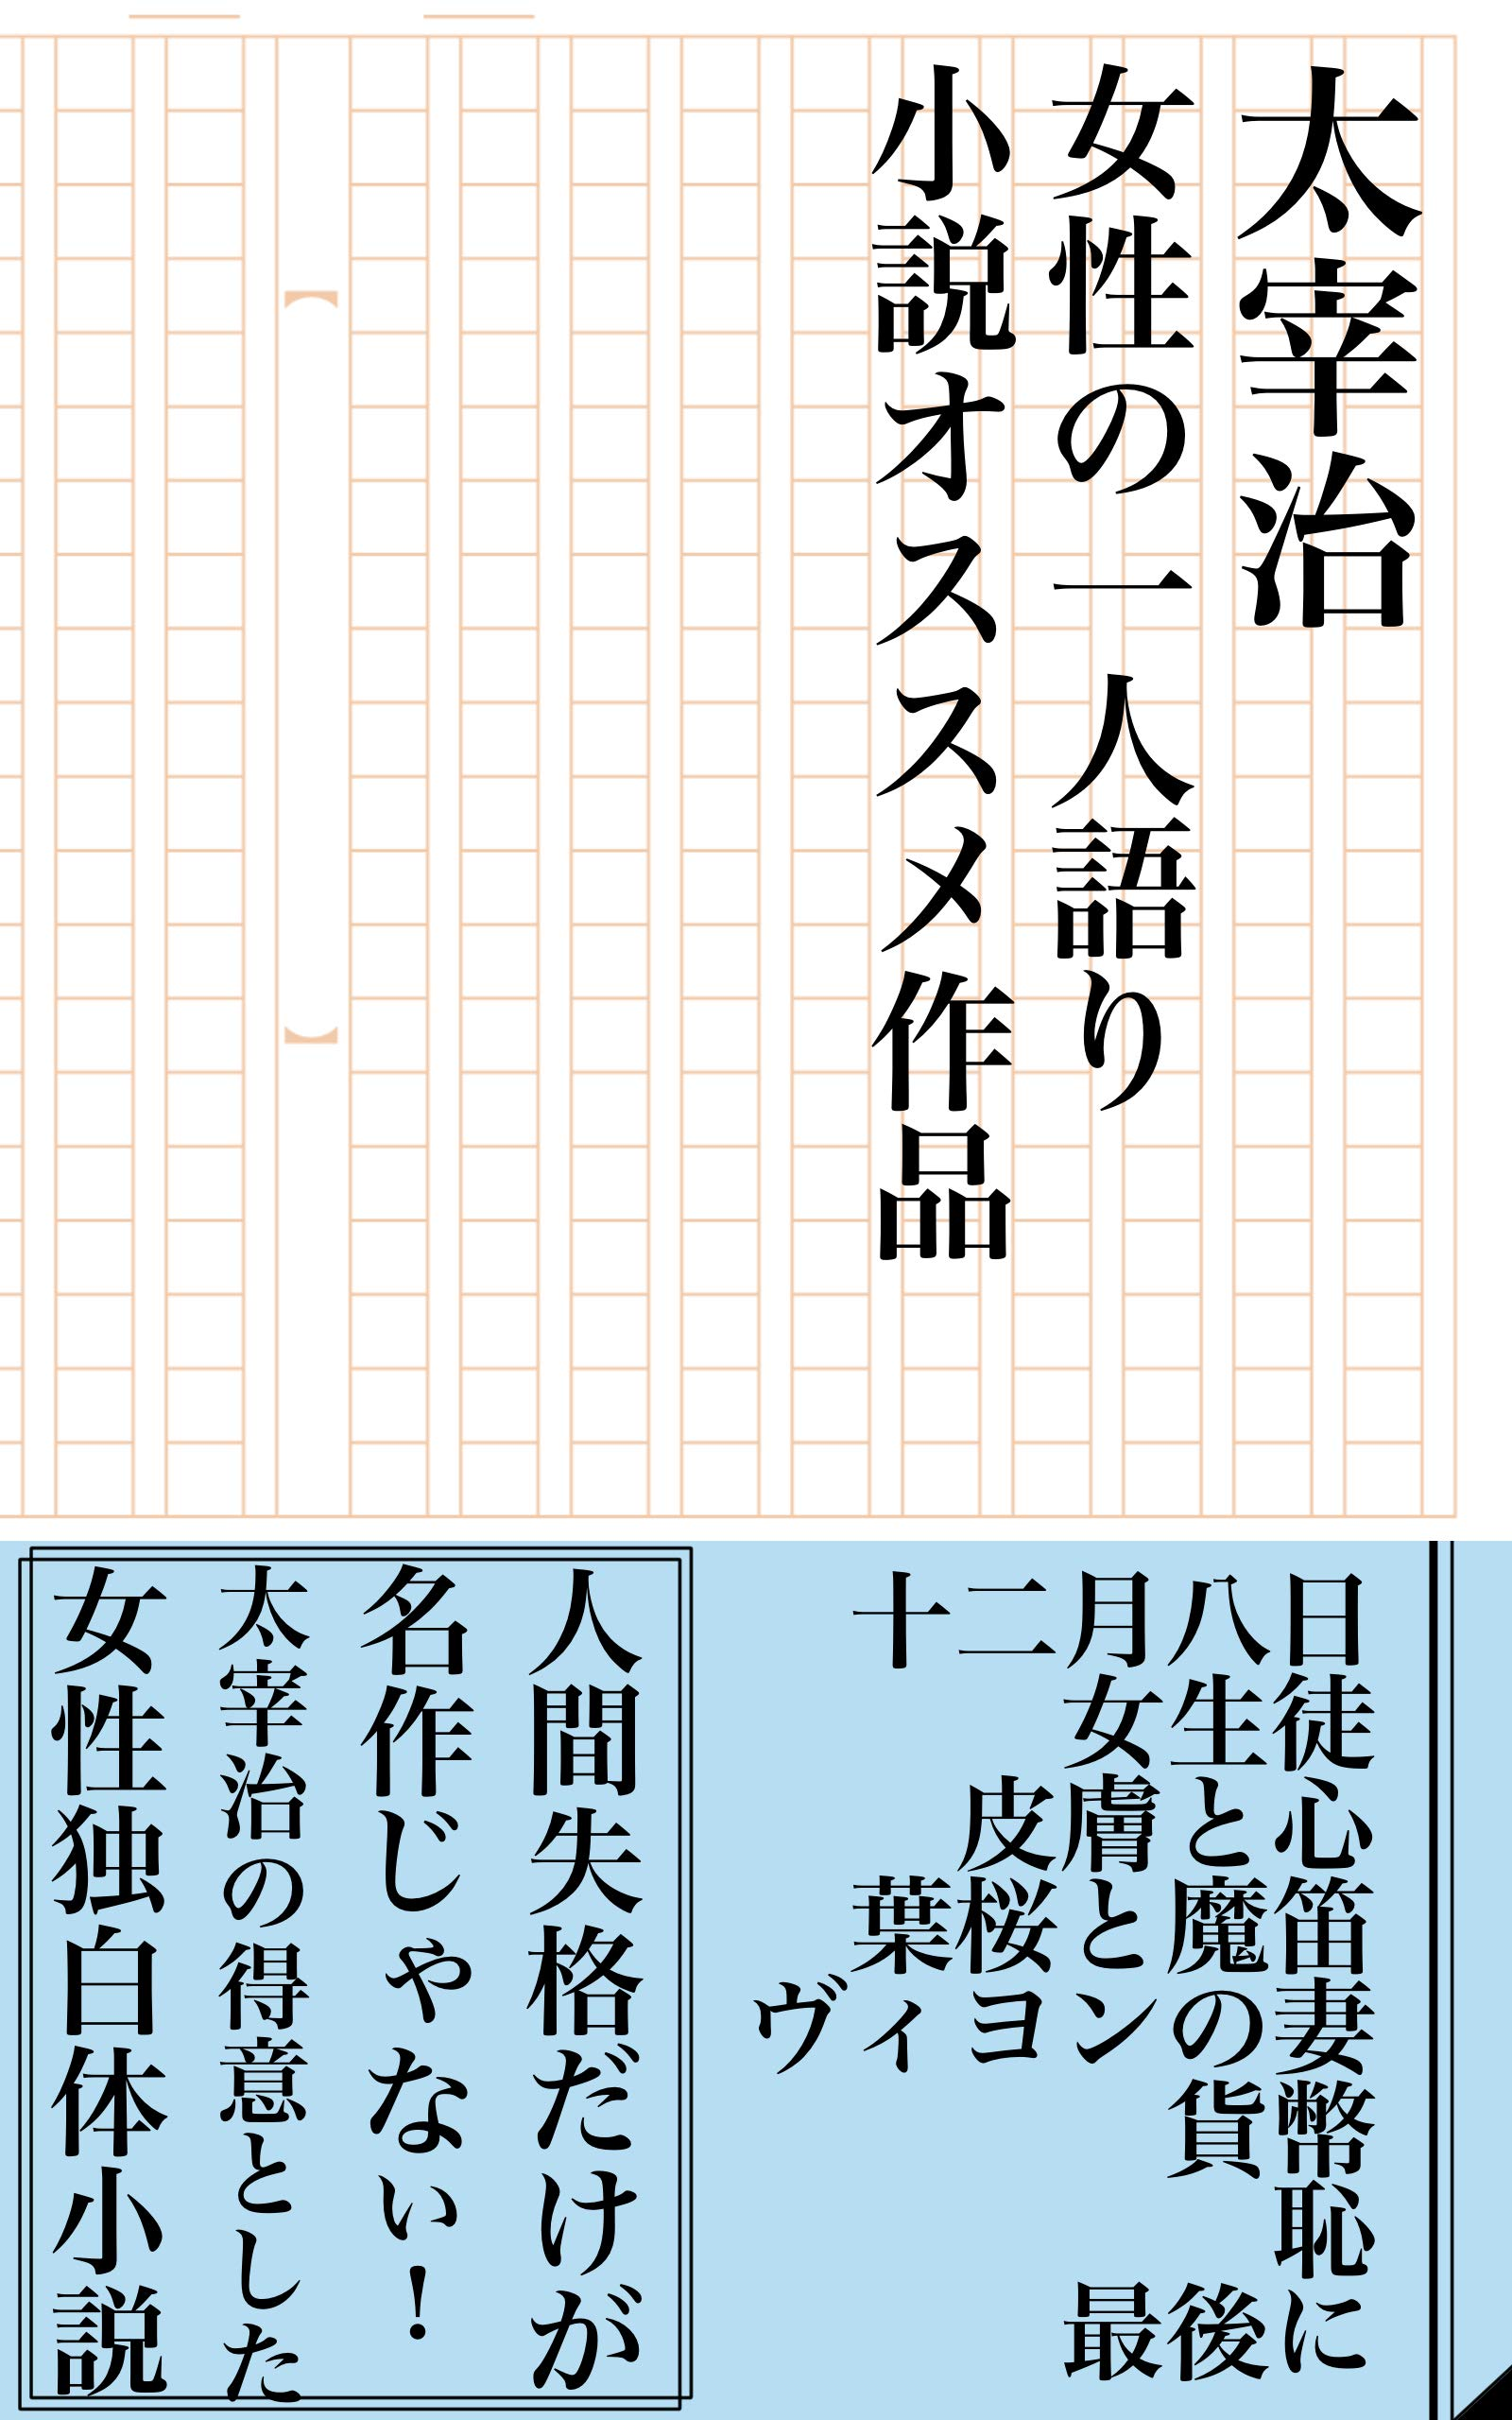 One of Osamu Dazai women talk novel recommended work: The monologue novel which Osamu Dazai that only No Longer Human was not a masterpiece was good at for women